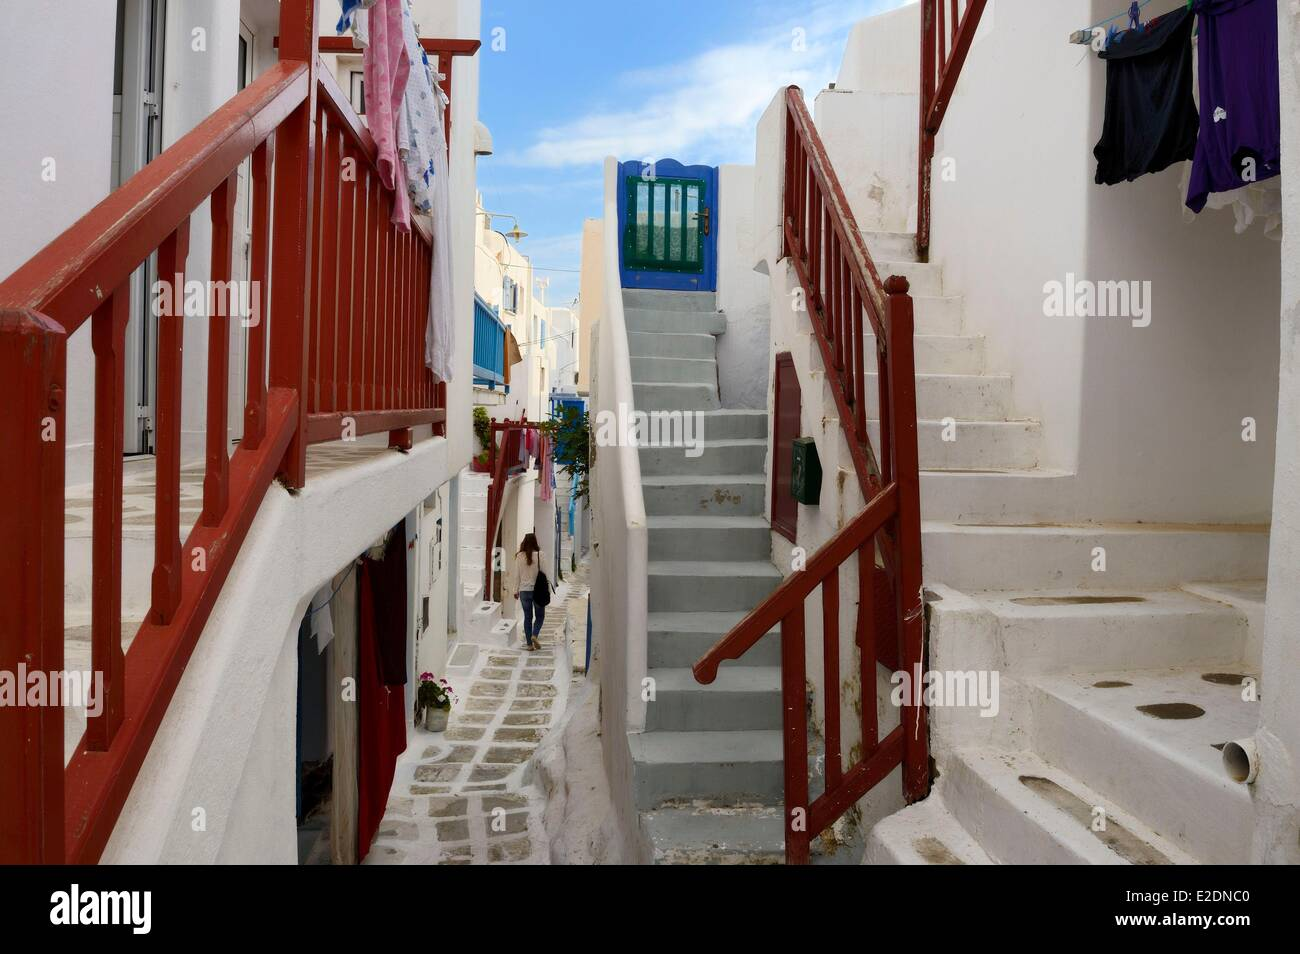 Greece Cyclades islands Mykonos island Chora (Mykonos town) in the streets of the old town - Stock Image